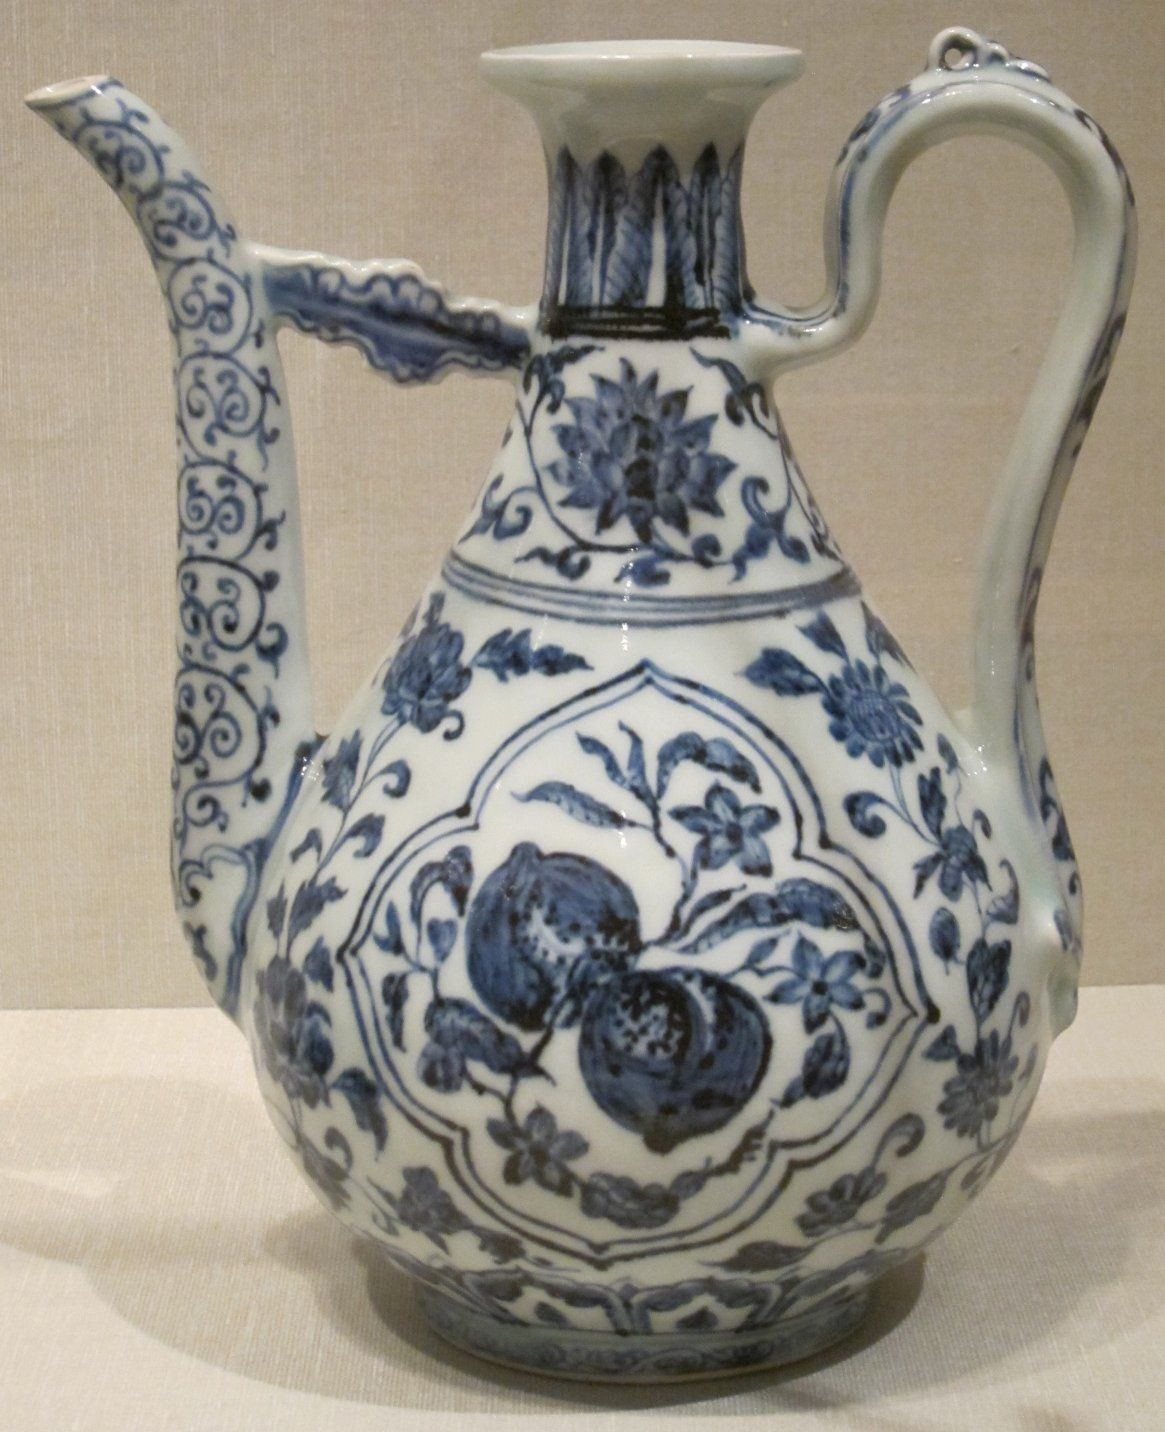 Chinese wine ewer ming dynasty early 15th century porcelain chinese wine ewer ming dynasty early 15th century porcelain with glaze reviewsmspy